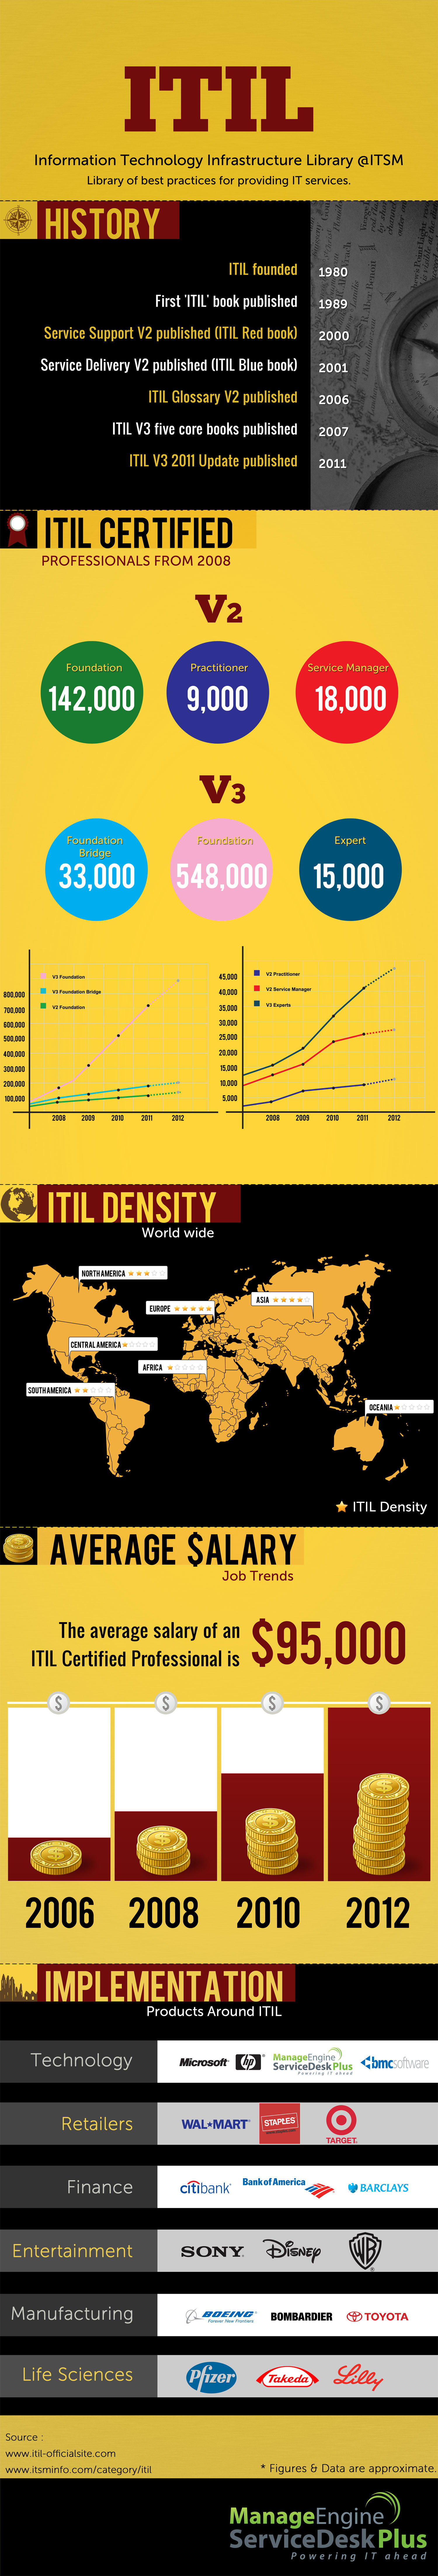 ITIL Infographics Infographic